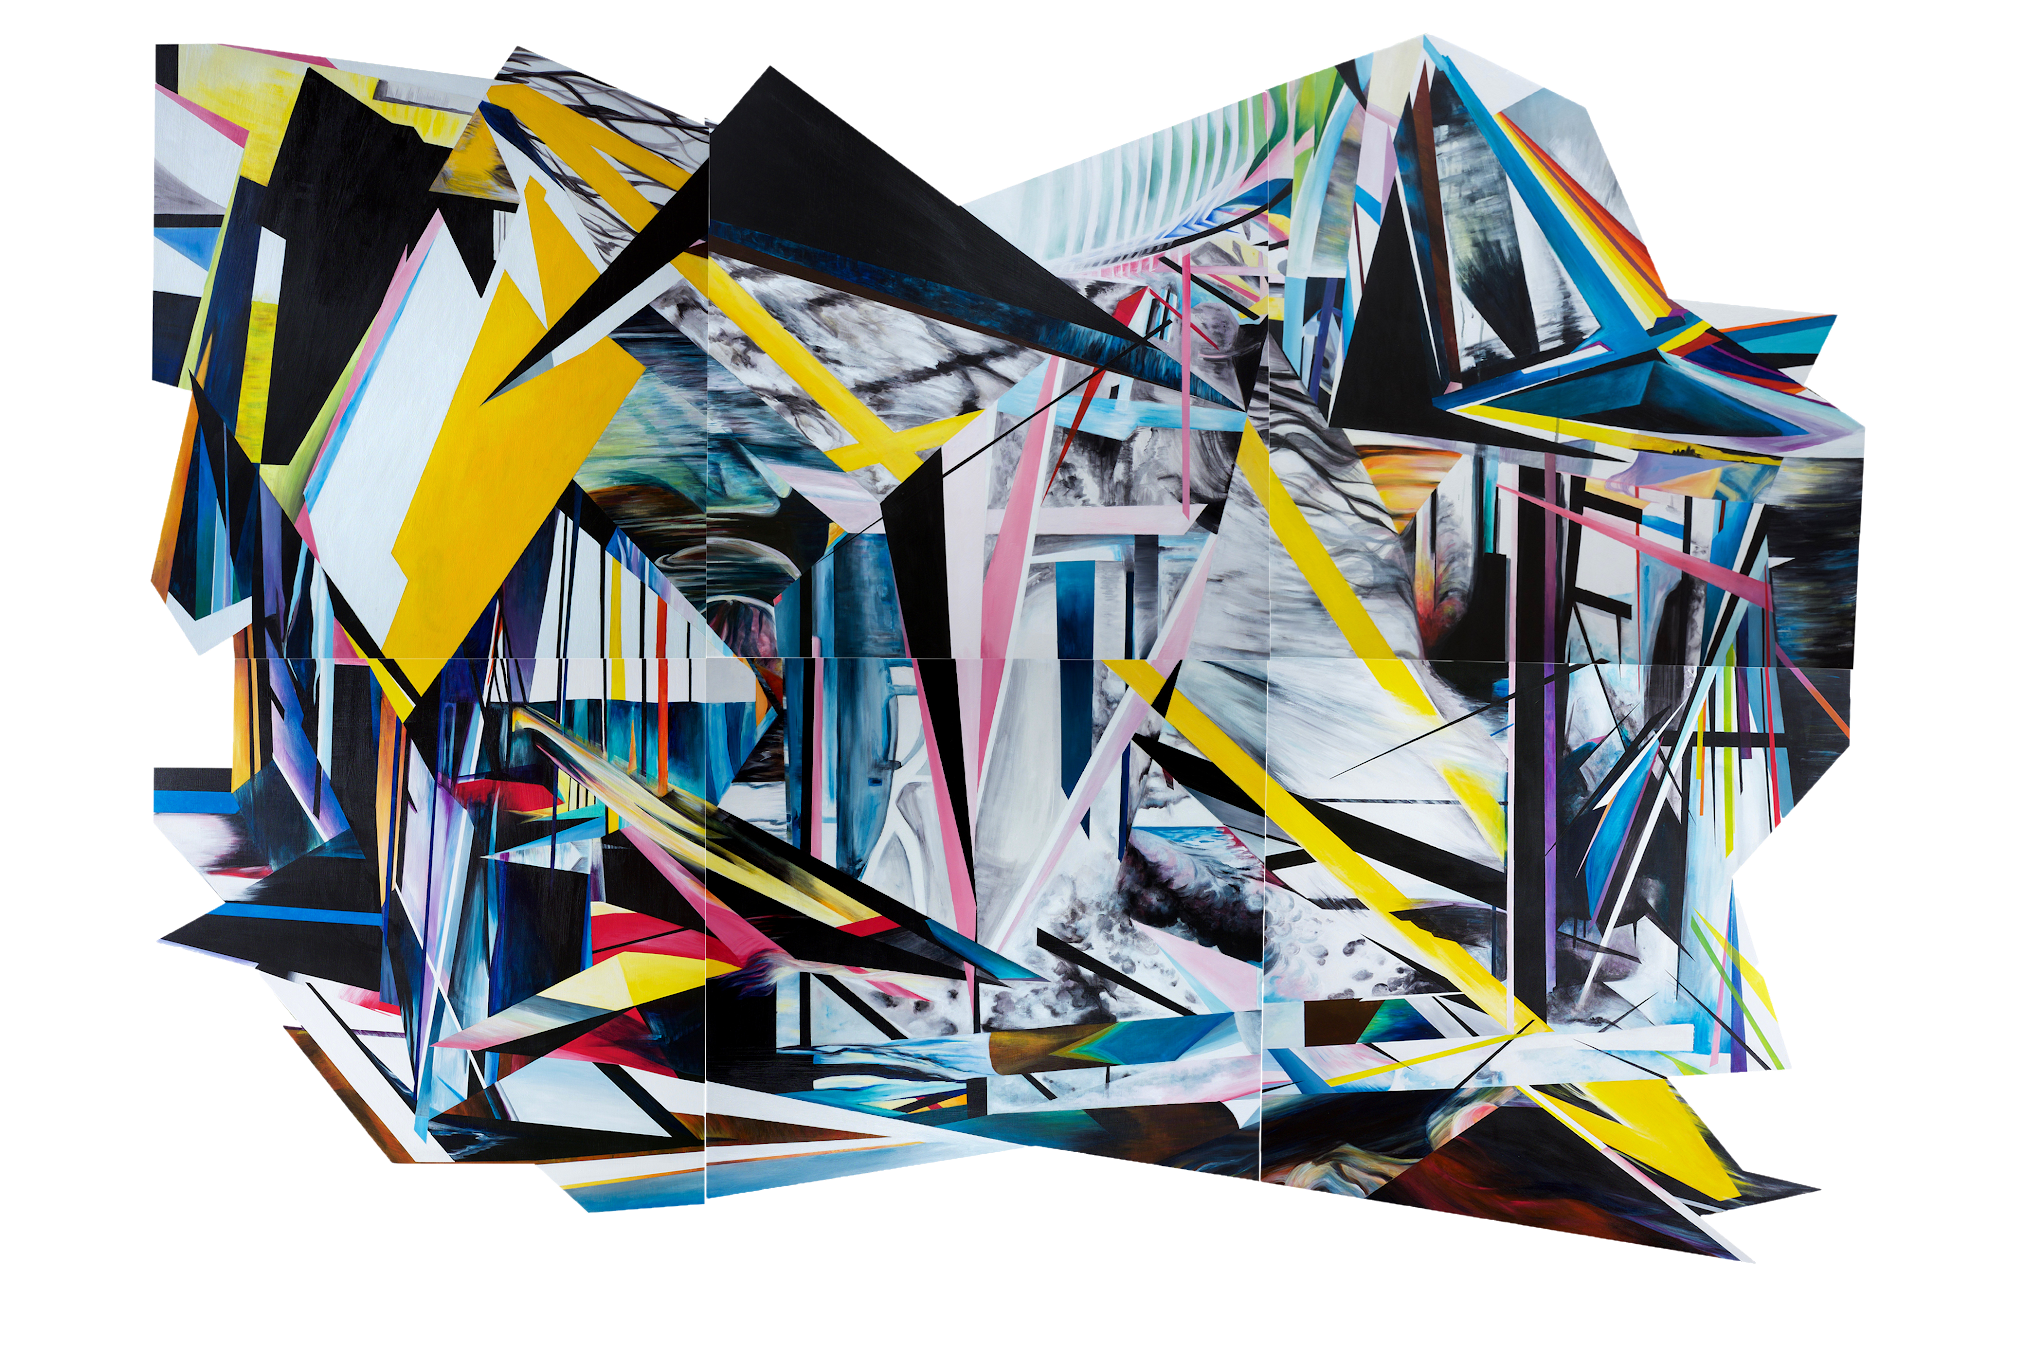 Aftermath 2019 Acrylic on multiples boards 12 x 8 '    Contact Me About This Piece